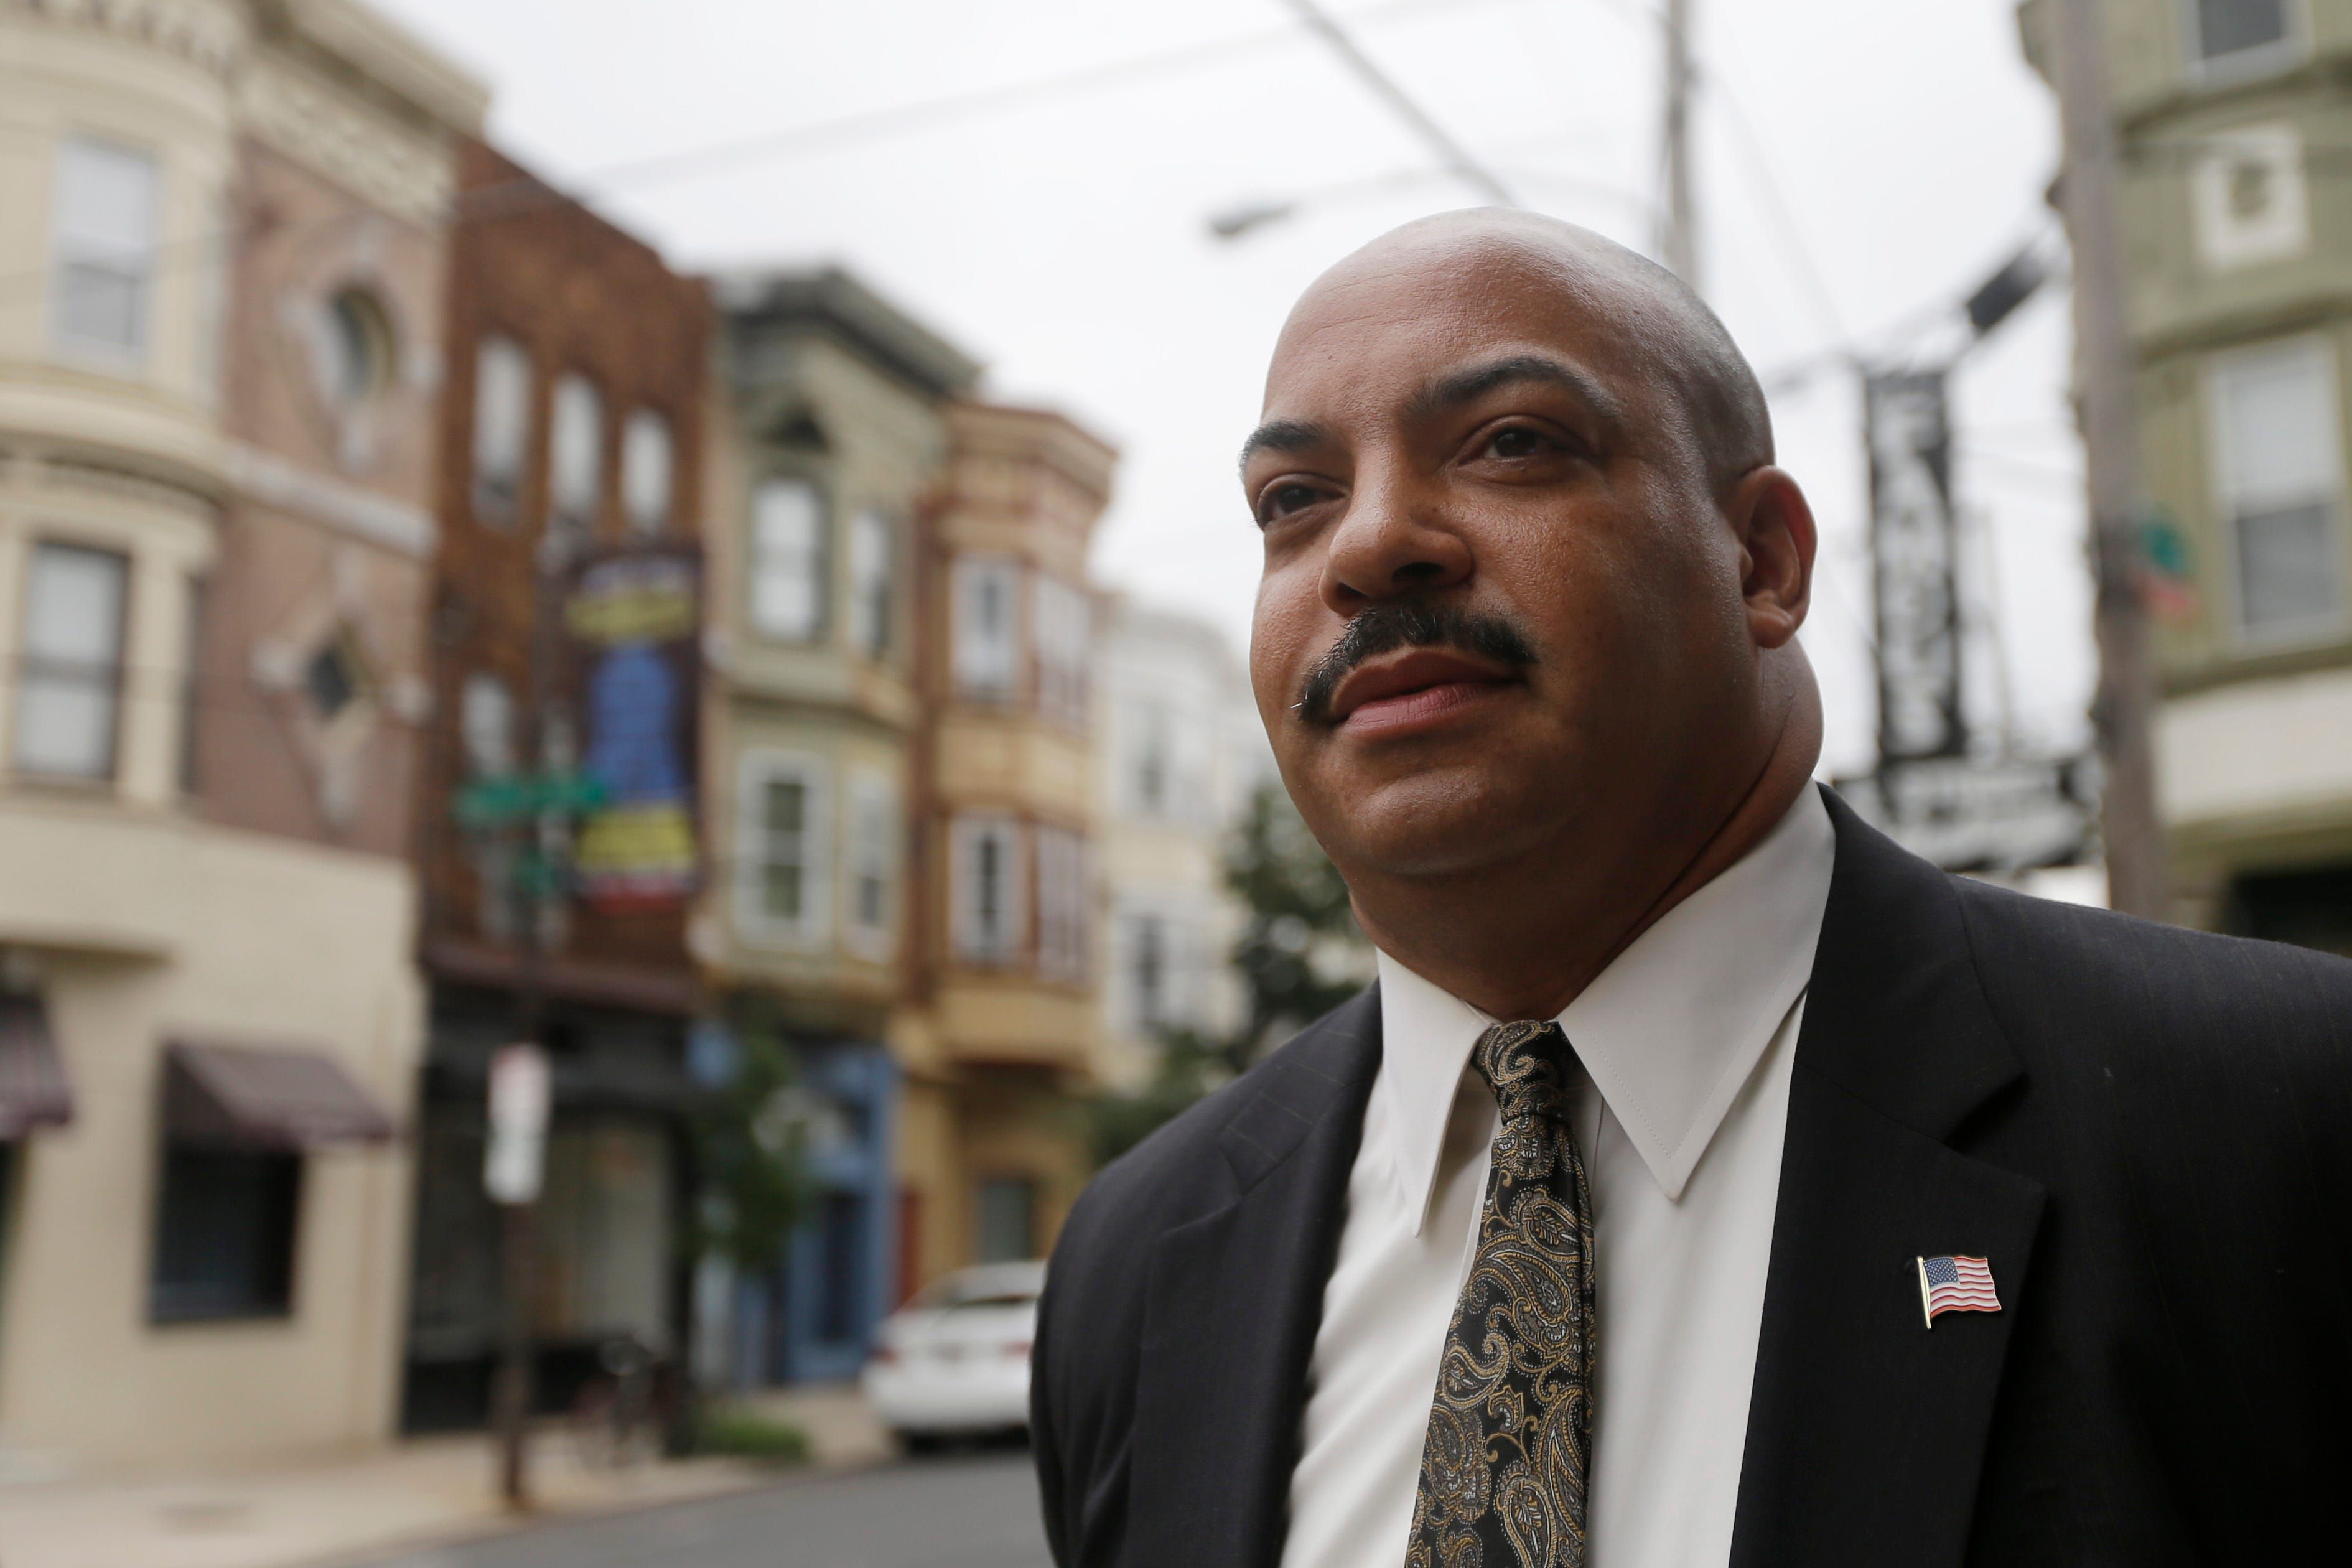 Philadelphia district attorney pleads not guilty to bribery, corruption charges